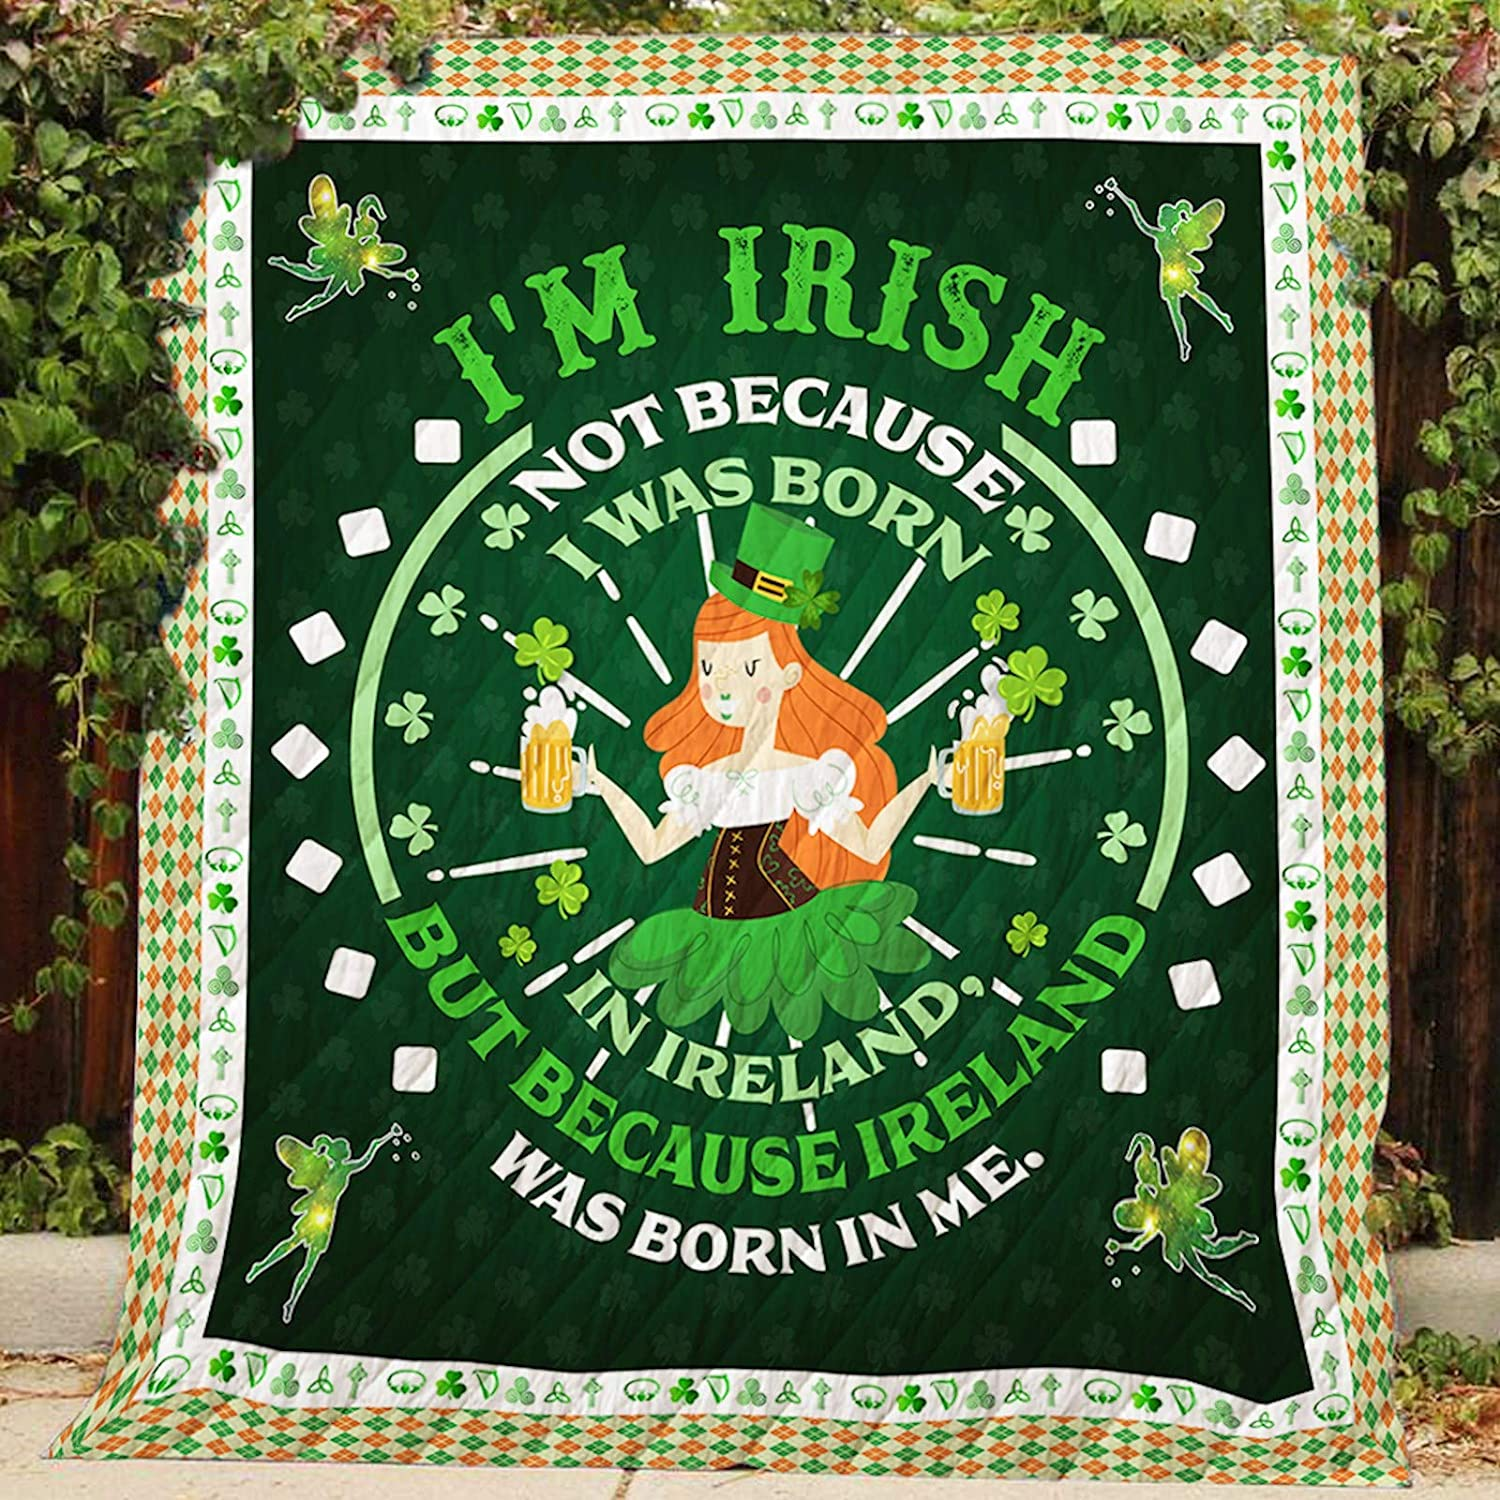 Ireland was Born in Me Quilt P308, Queen All-Season Quilts Comforters with Reversible Cotton King Queen Twin Size - Best Decorative Quilts-Unique Quilted for Gifts